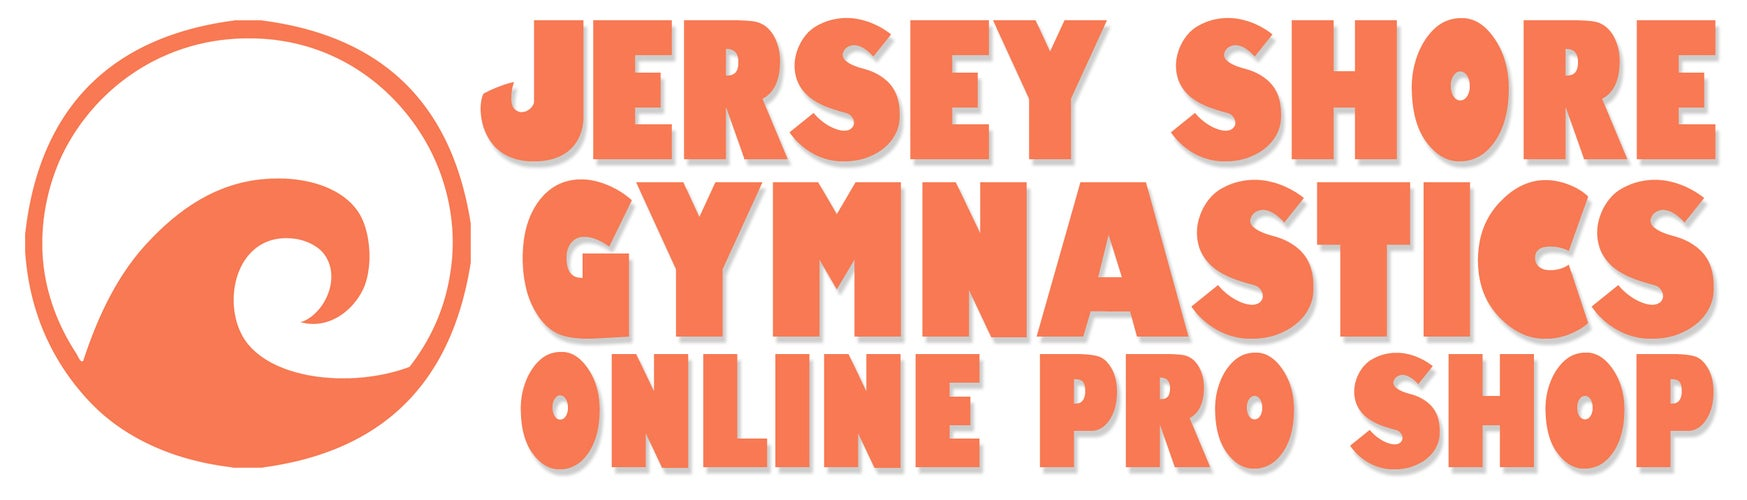 Jersey Shore Gymnastics Pro Shop